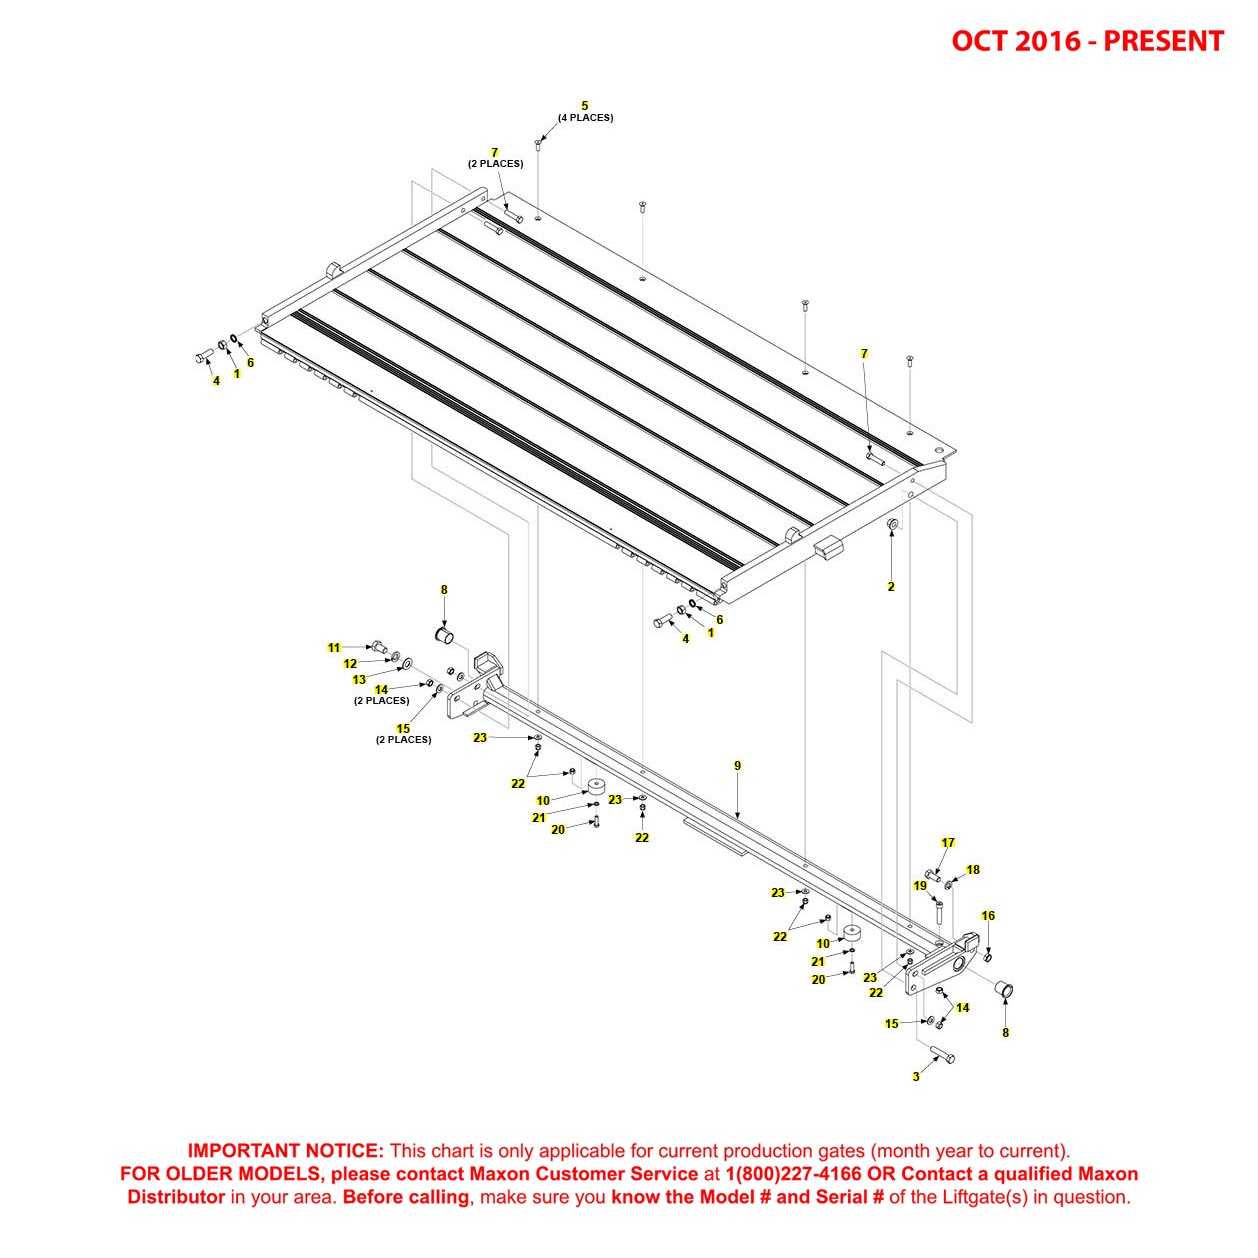 BMR (Oct 2016 - Present) Aluminum Platform Assembly Diagram